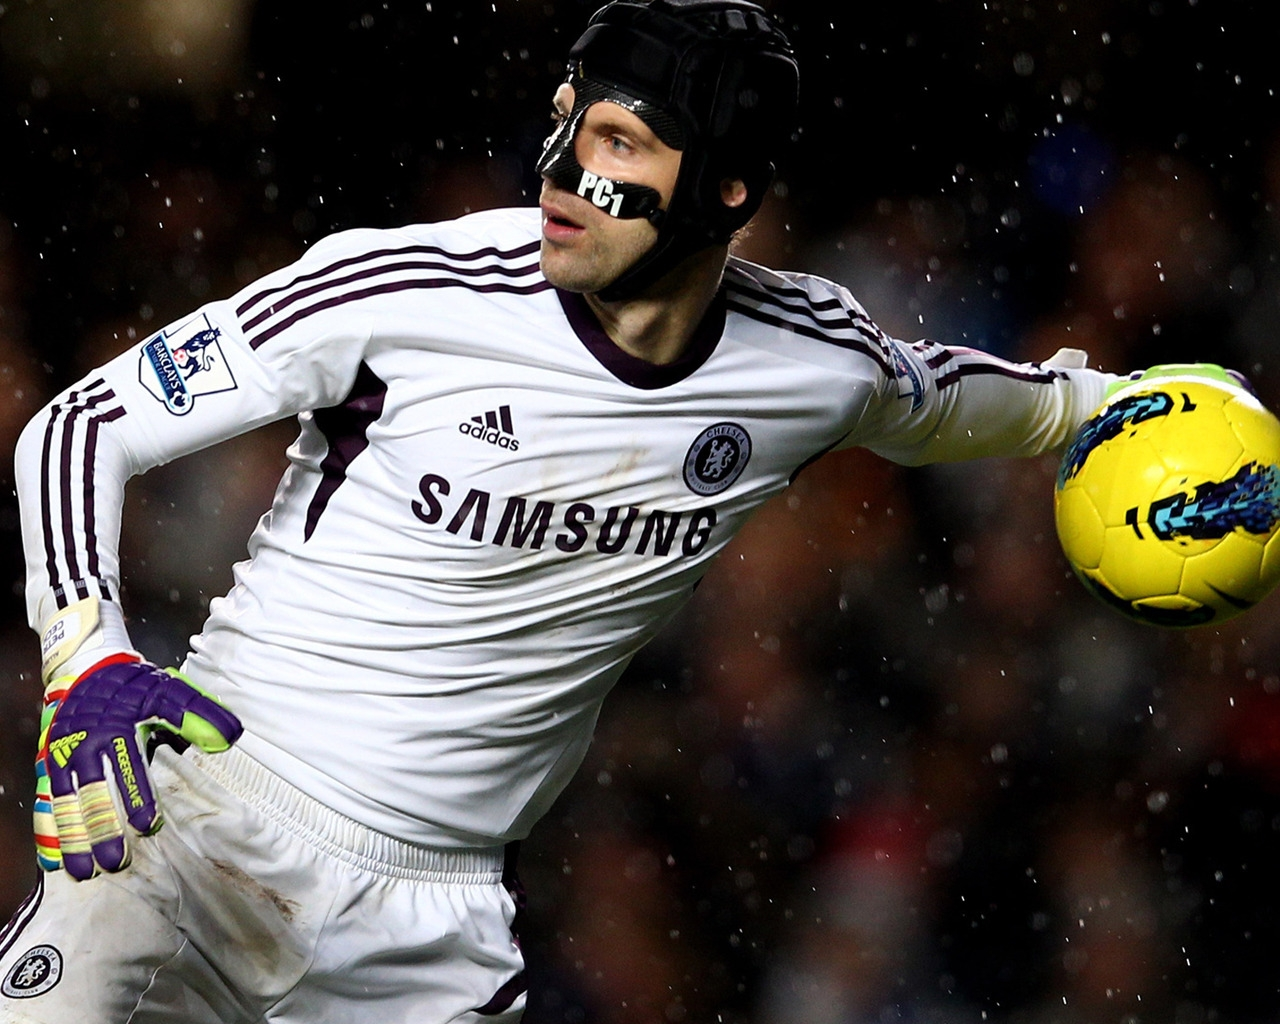 Petr Cech for 1280 x 1024 resolution